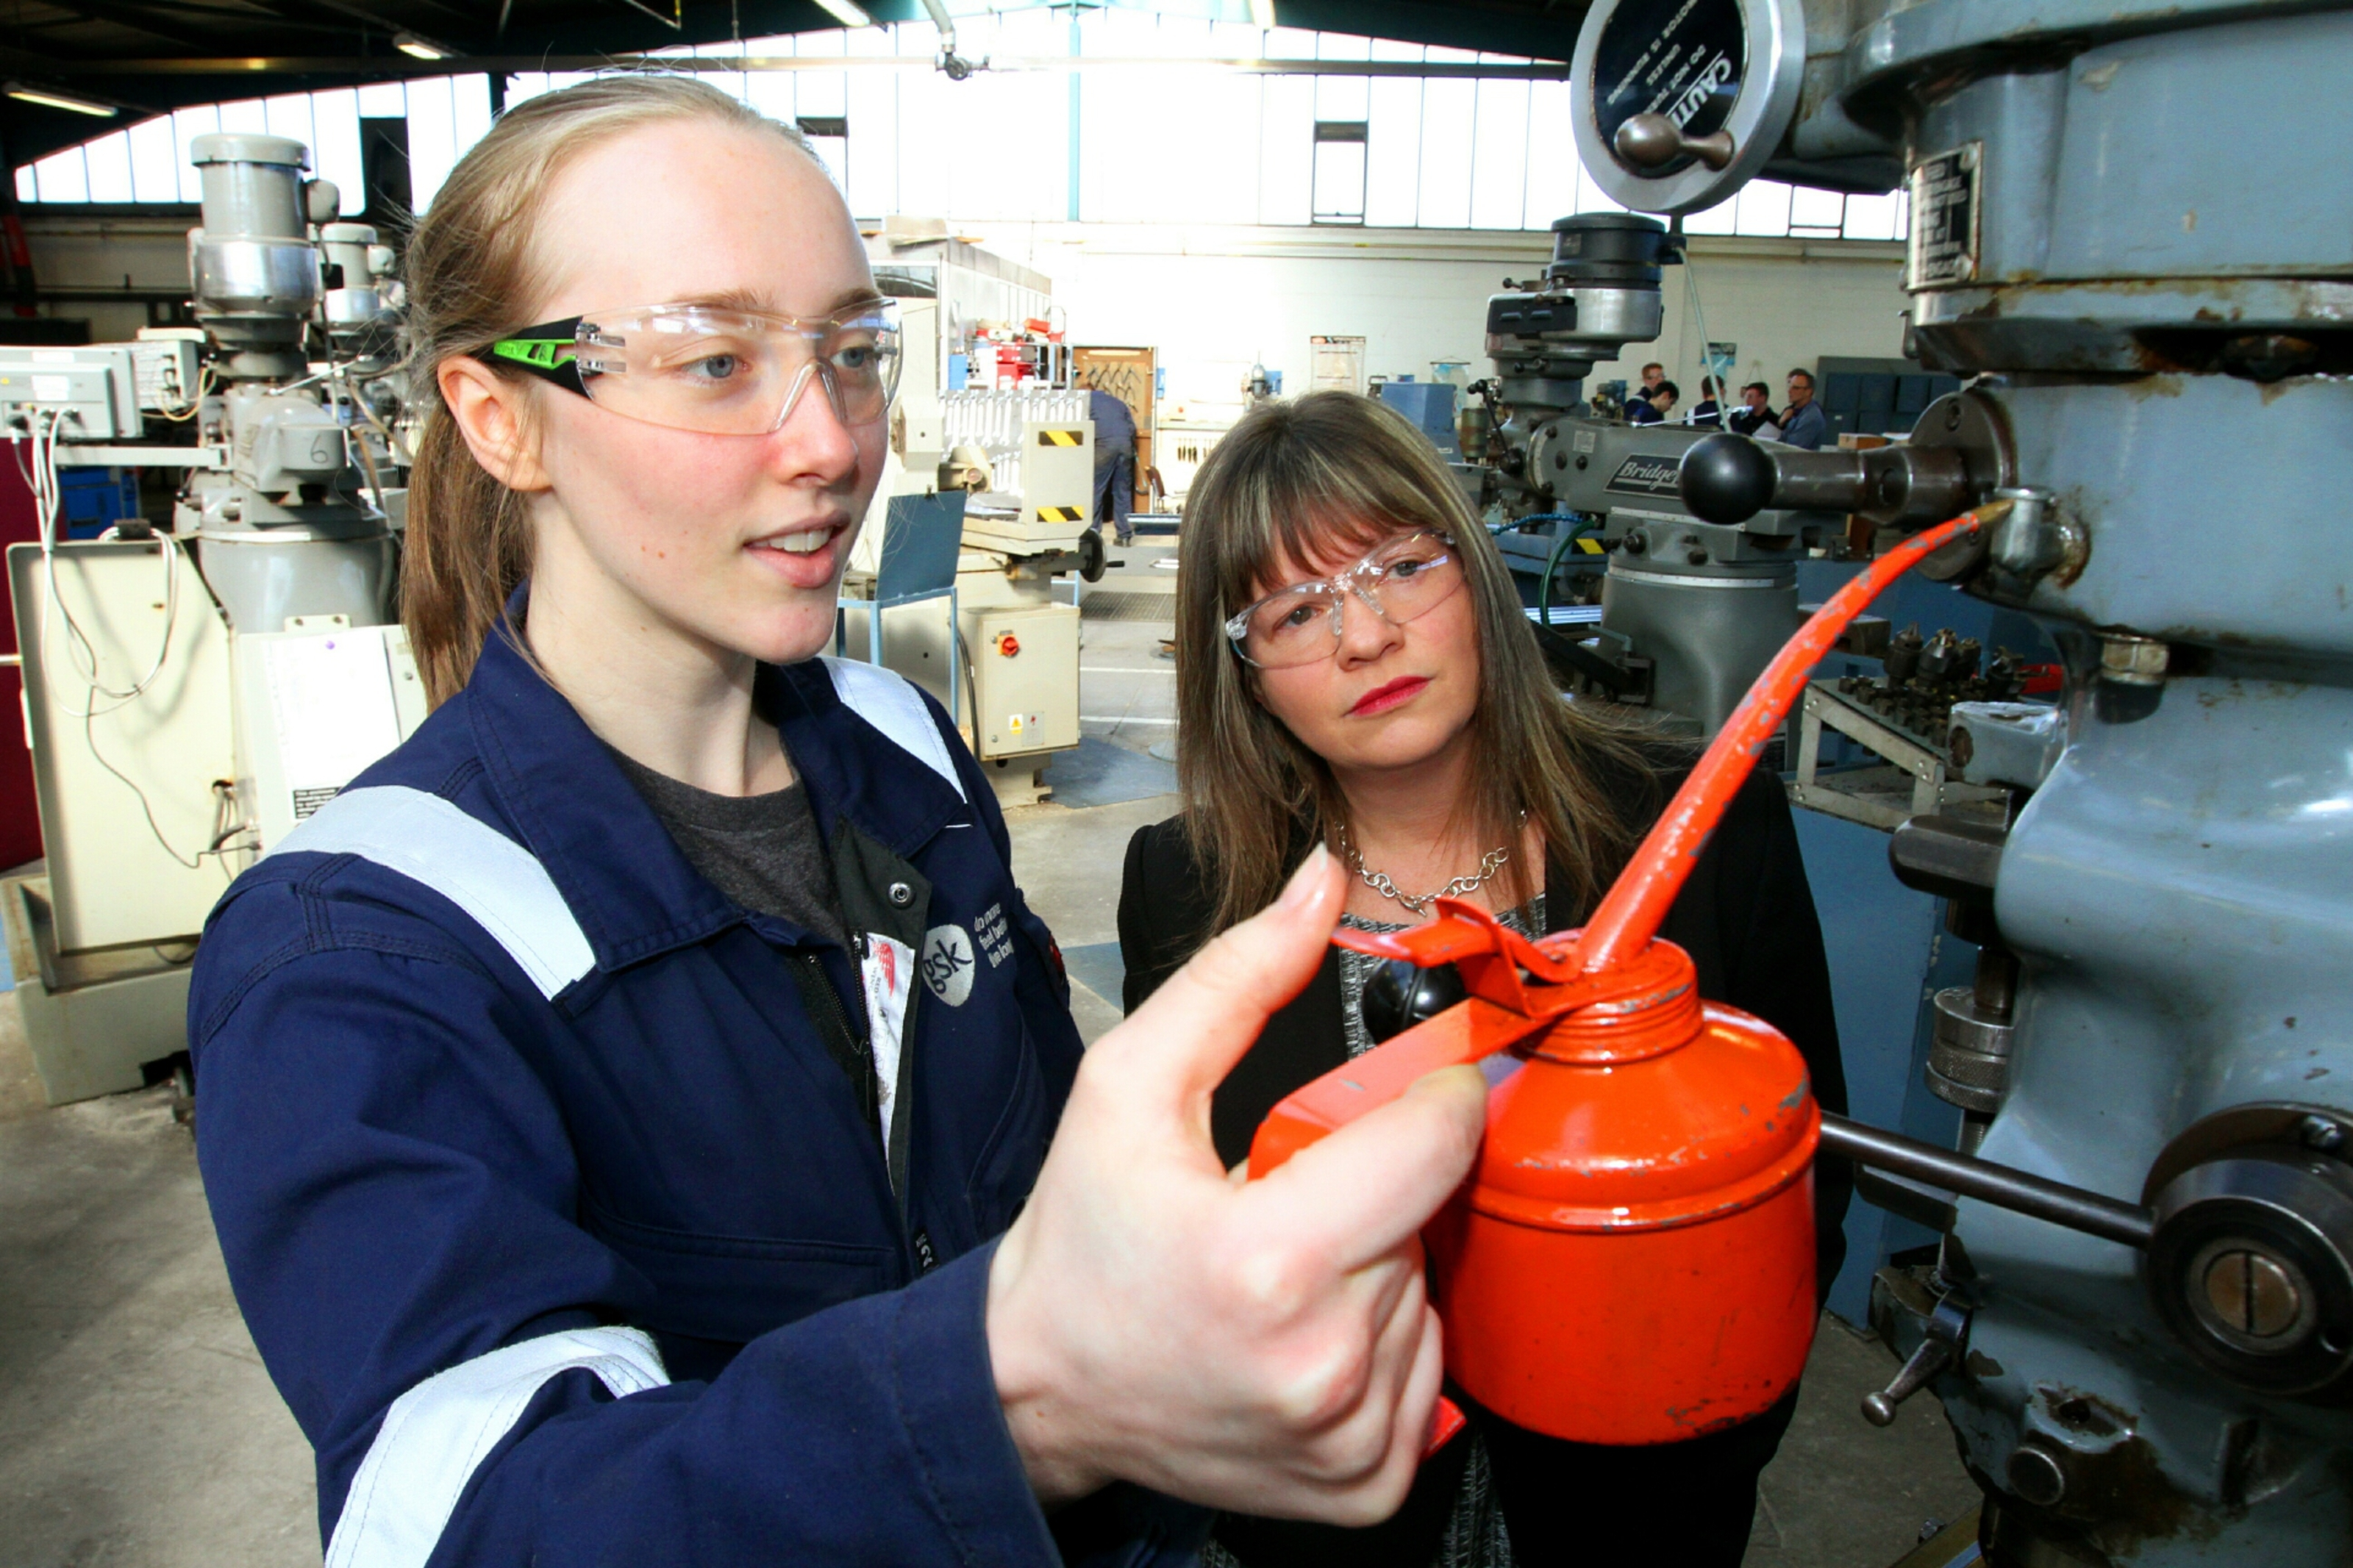 GlaxoSmithKline apprentice, 18 year old Kirsty Cant, with Sam Greer.